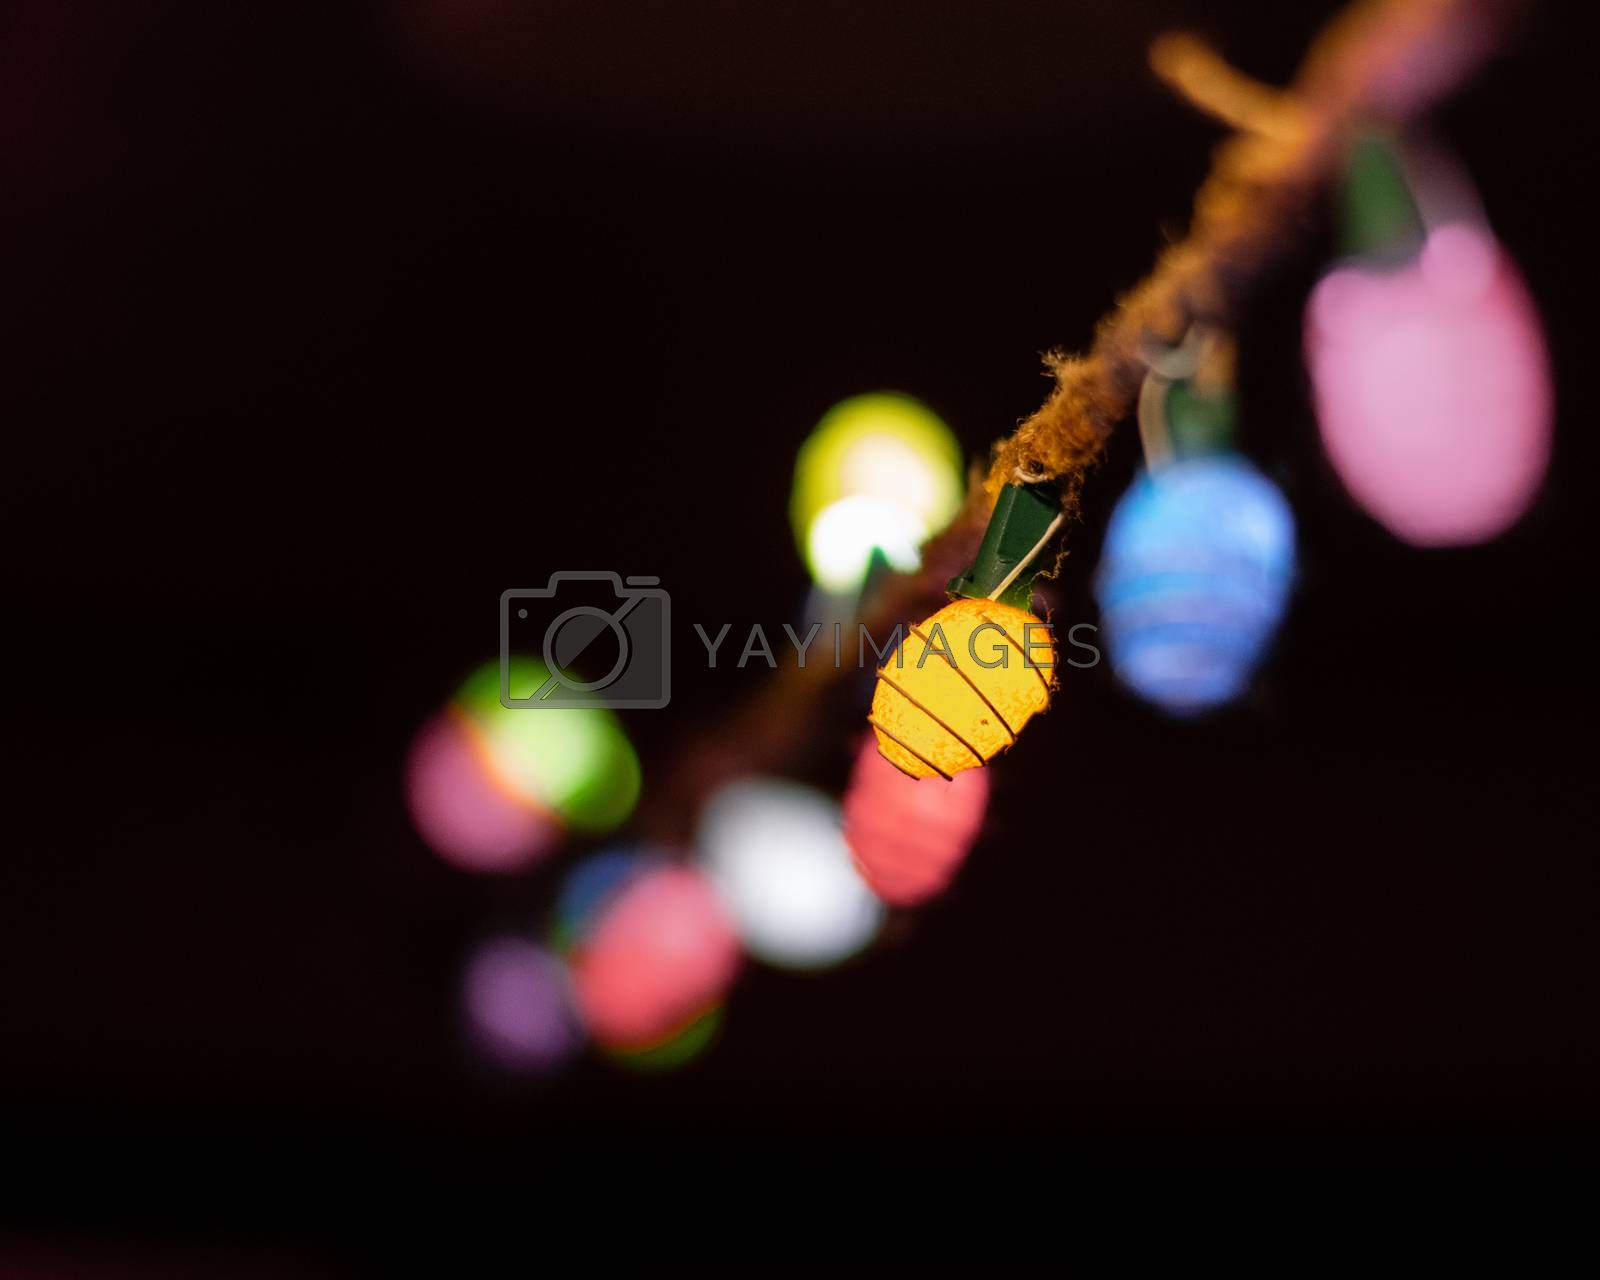 String Lights on Rope by benwehrman